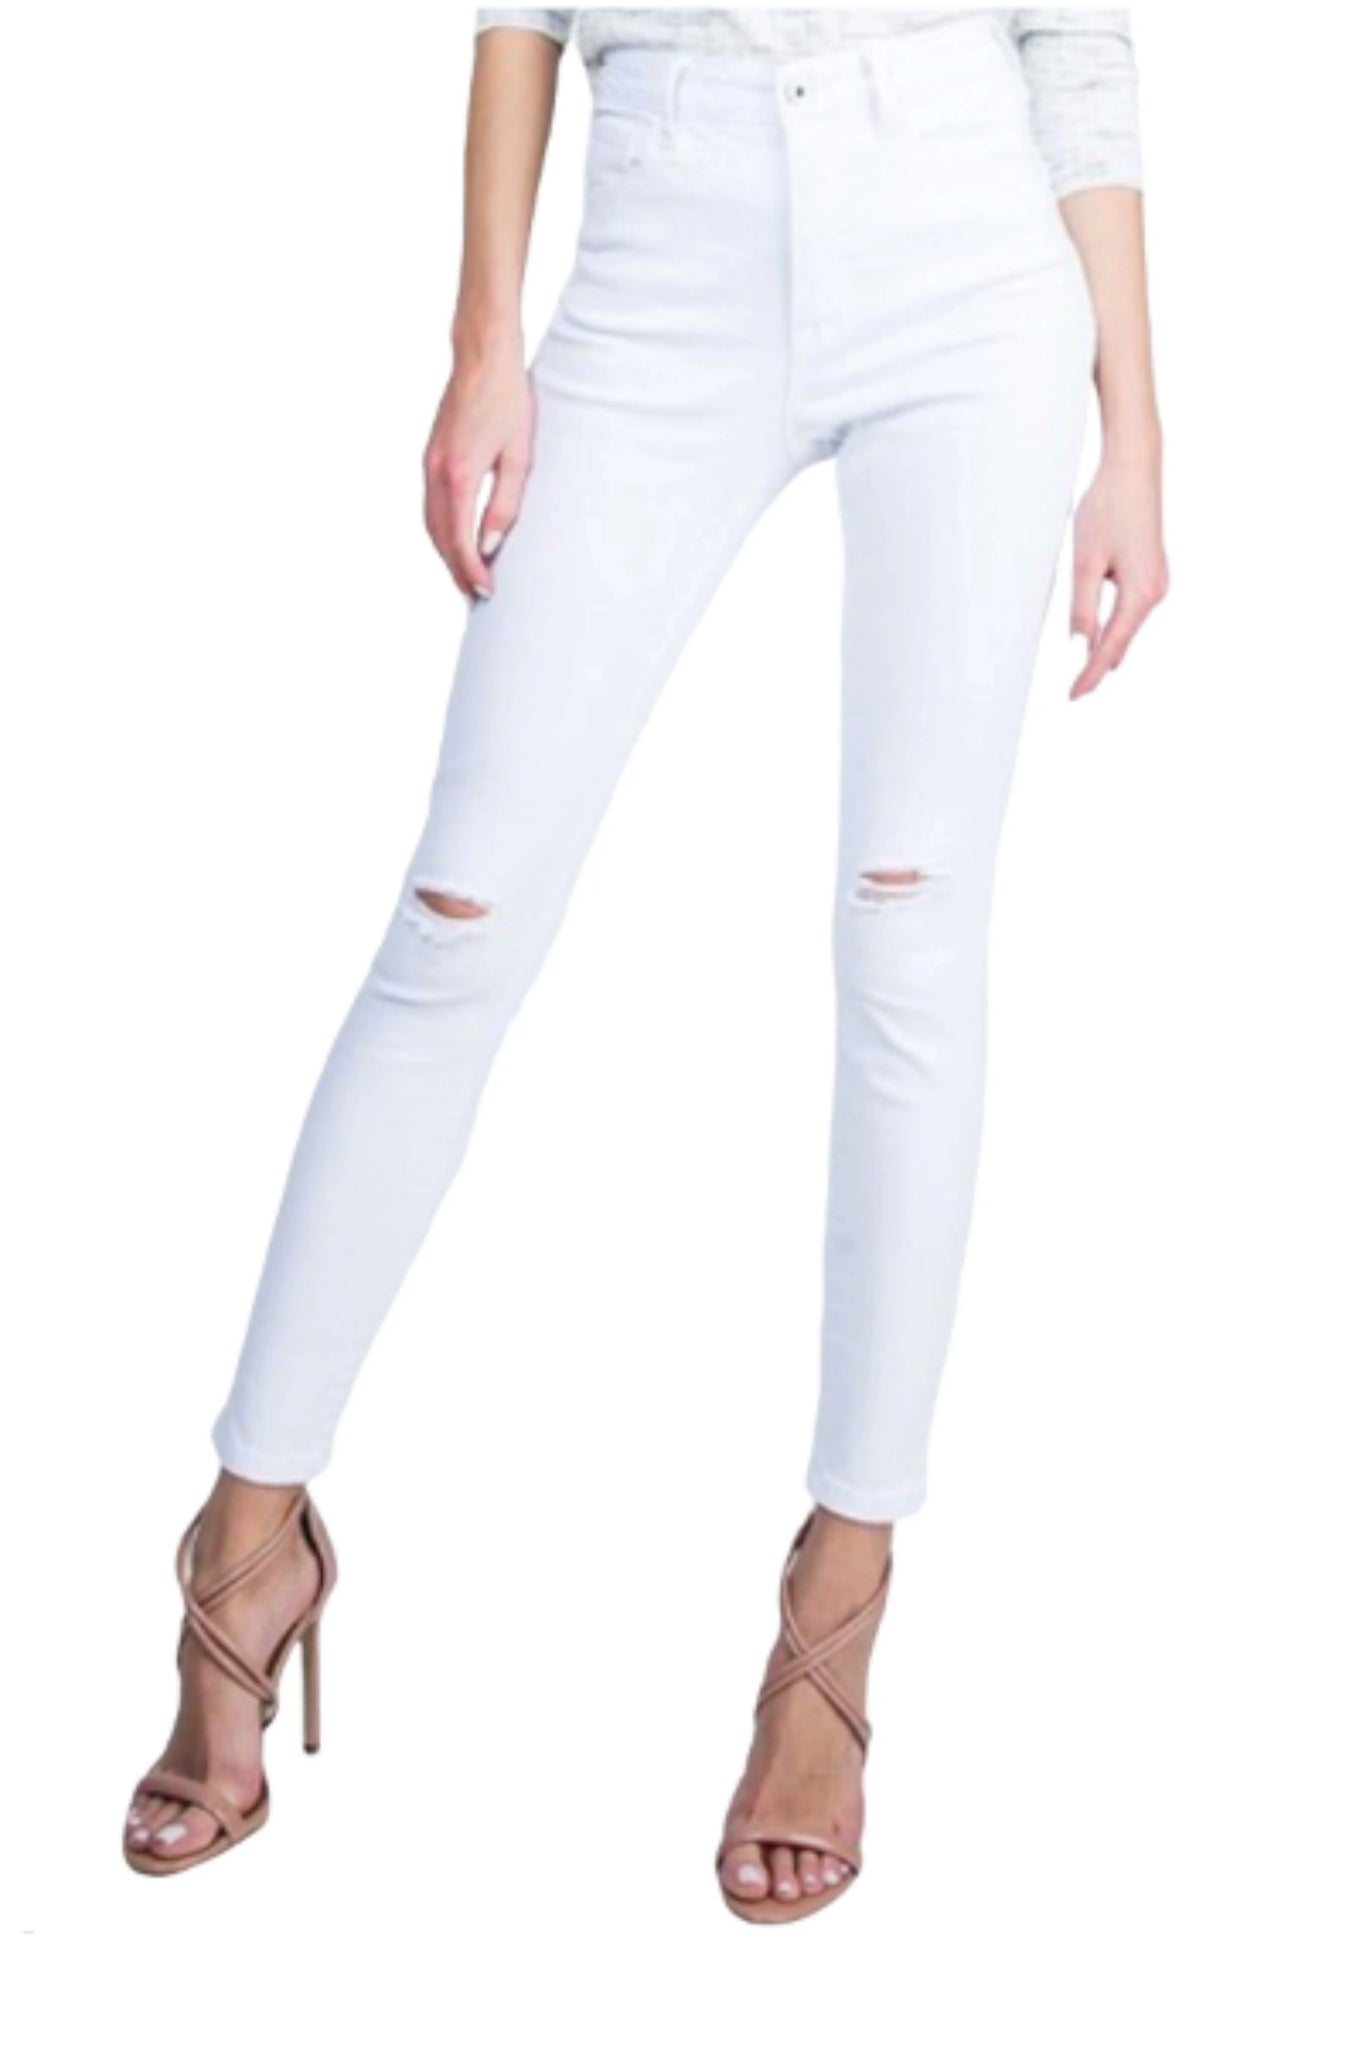 High Waisted Distressed White Skinny Jeans *FINAL SALE*